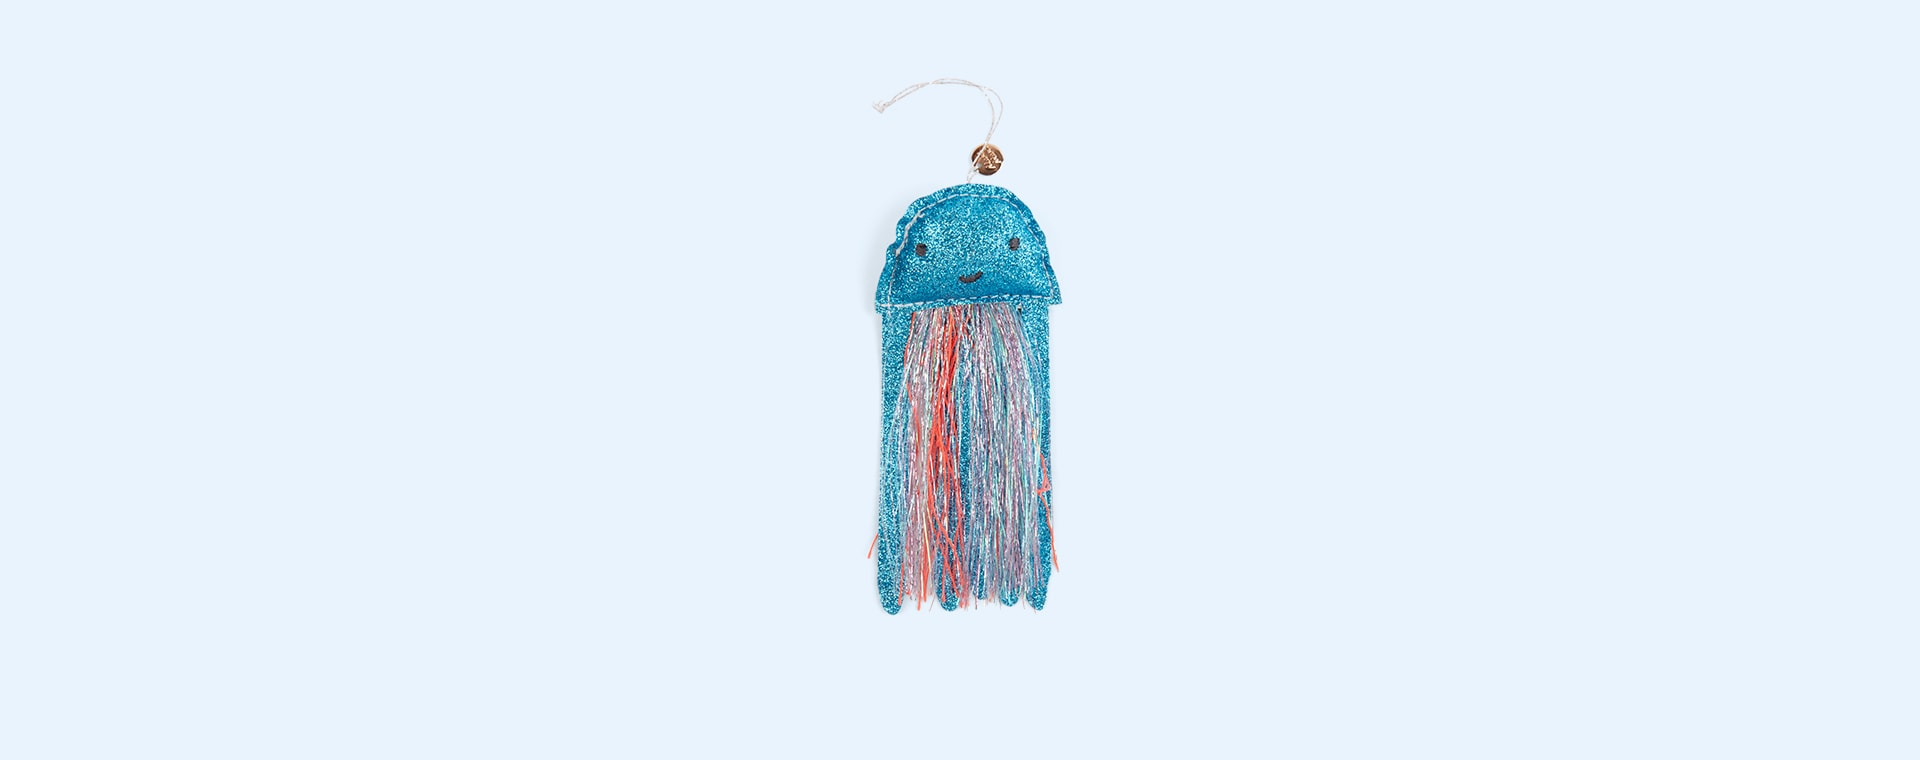 Blue Meri Meri Octopus Tree Decoration